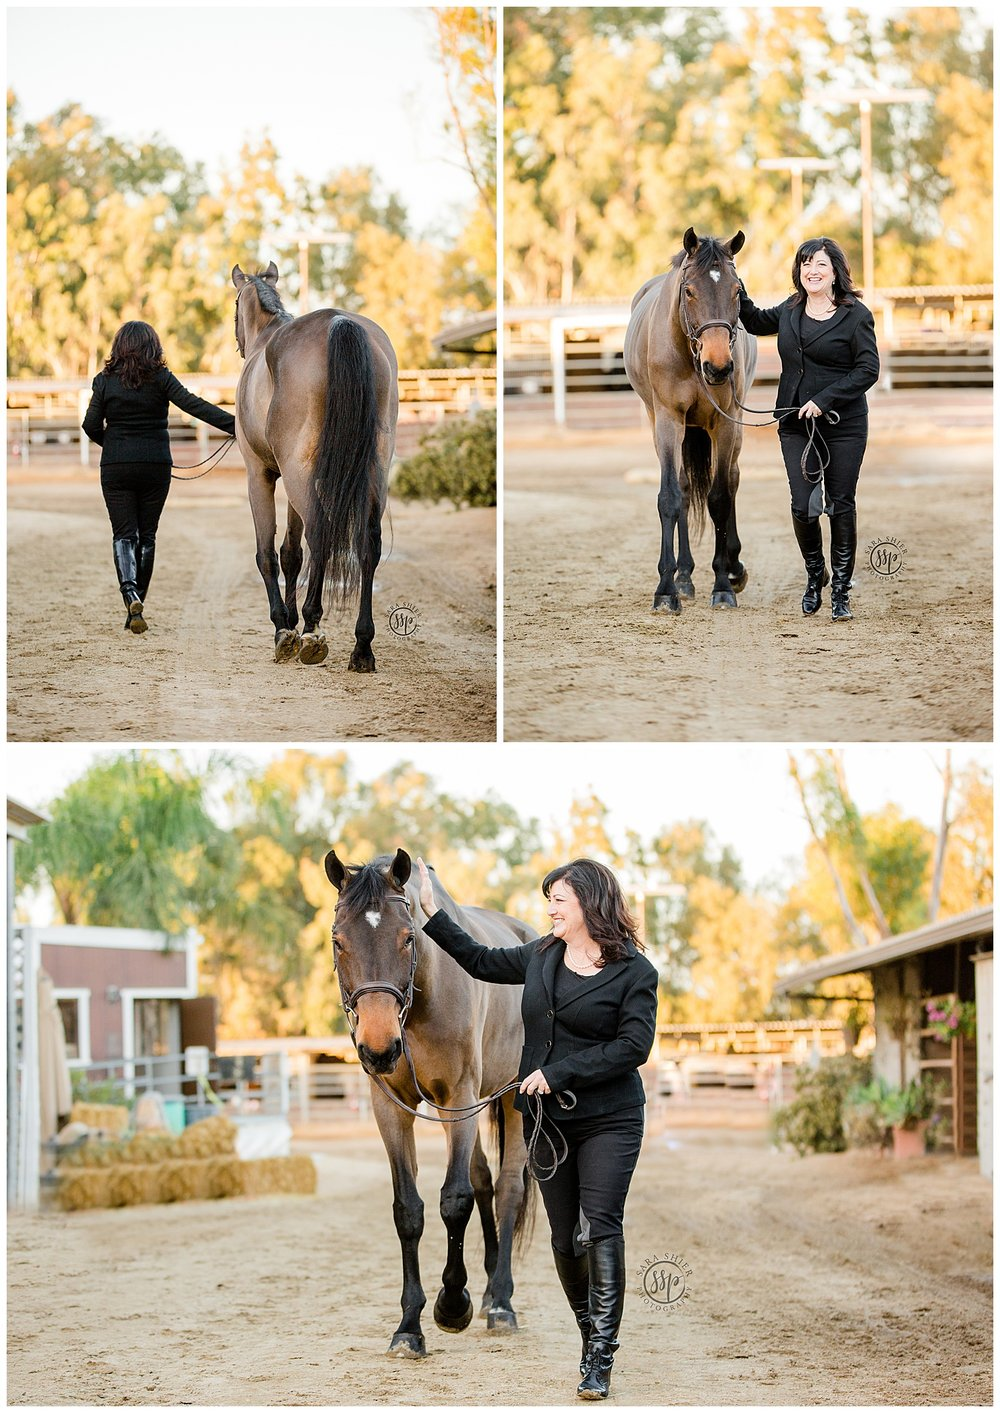 Black Background Horse Rider Equine Photographer Southern California Sara Shier Photography SoCal Equestrian Cowgirl_0464.jpg